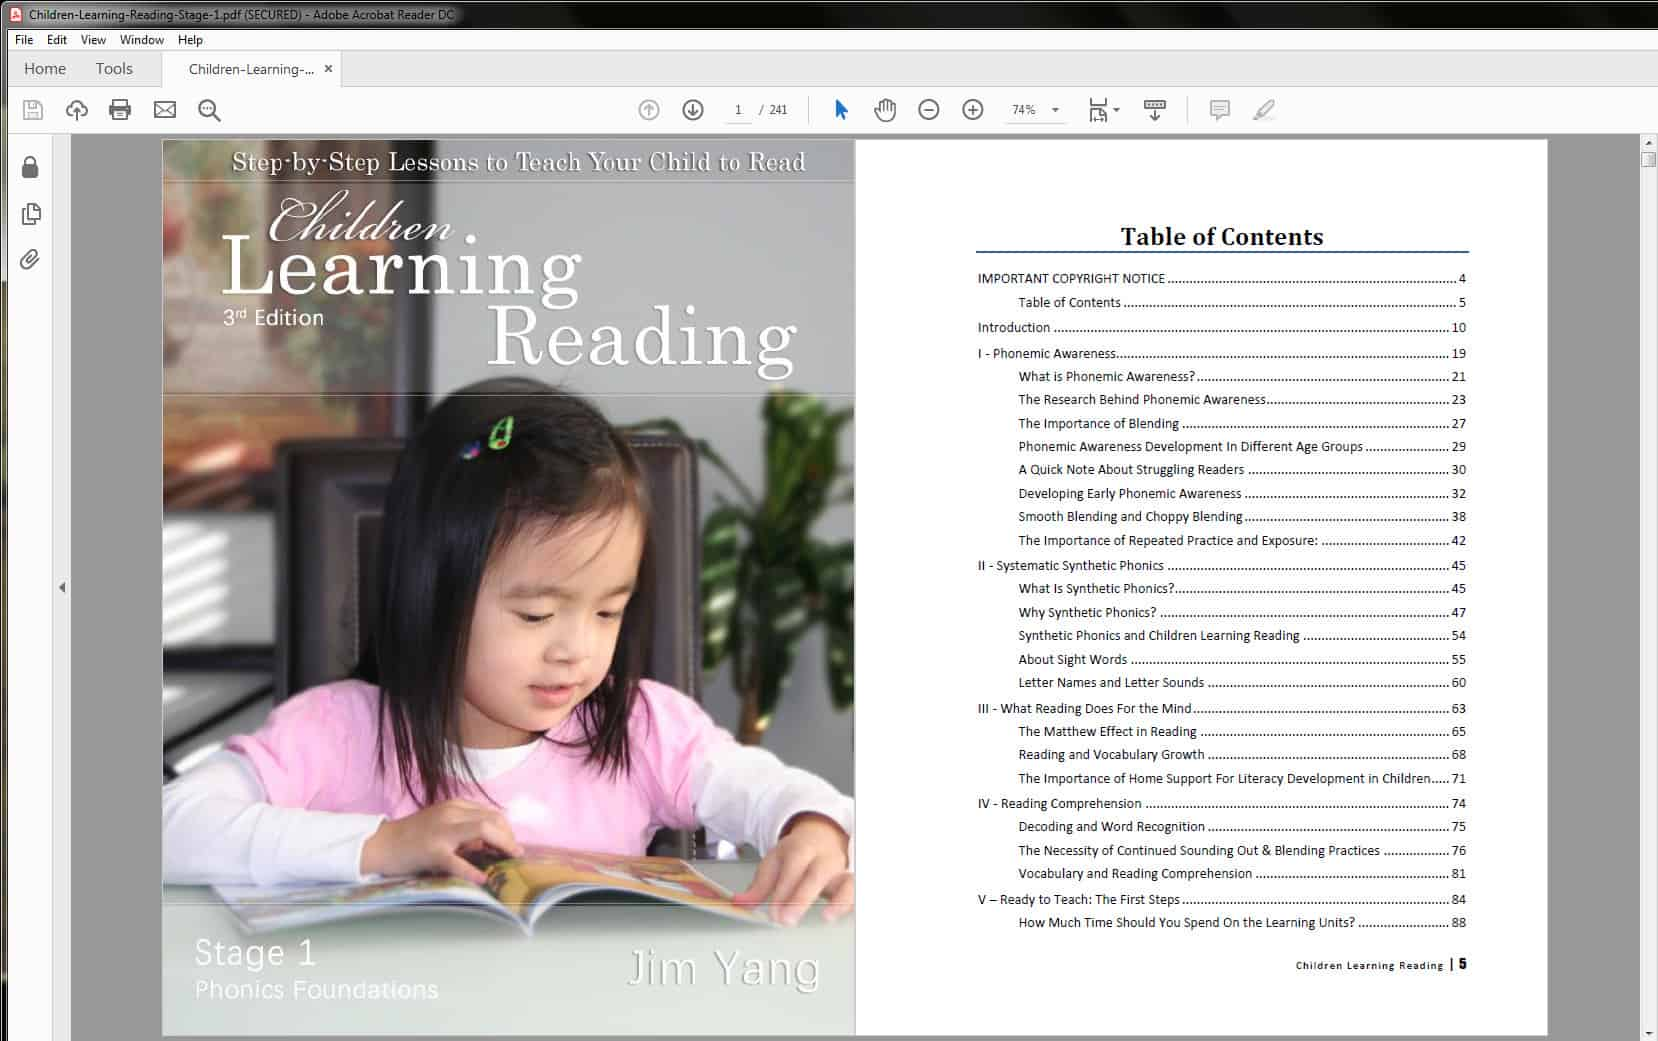 Children Learning Reading Table of Contents